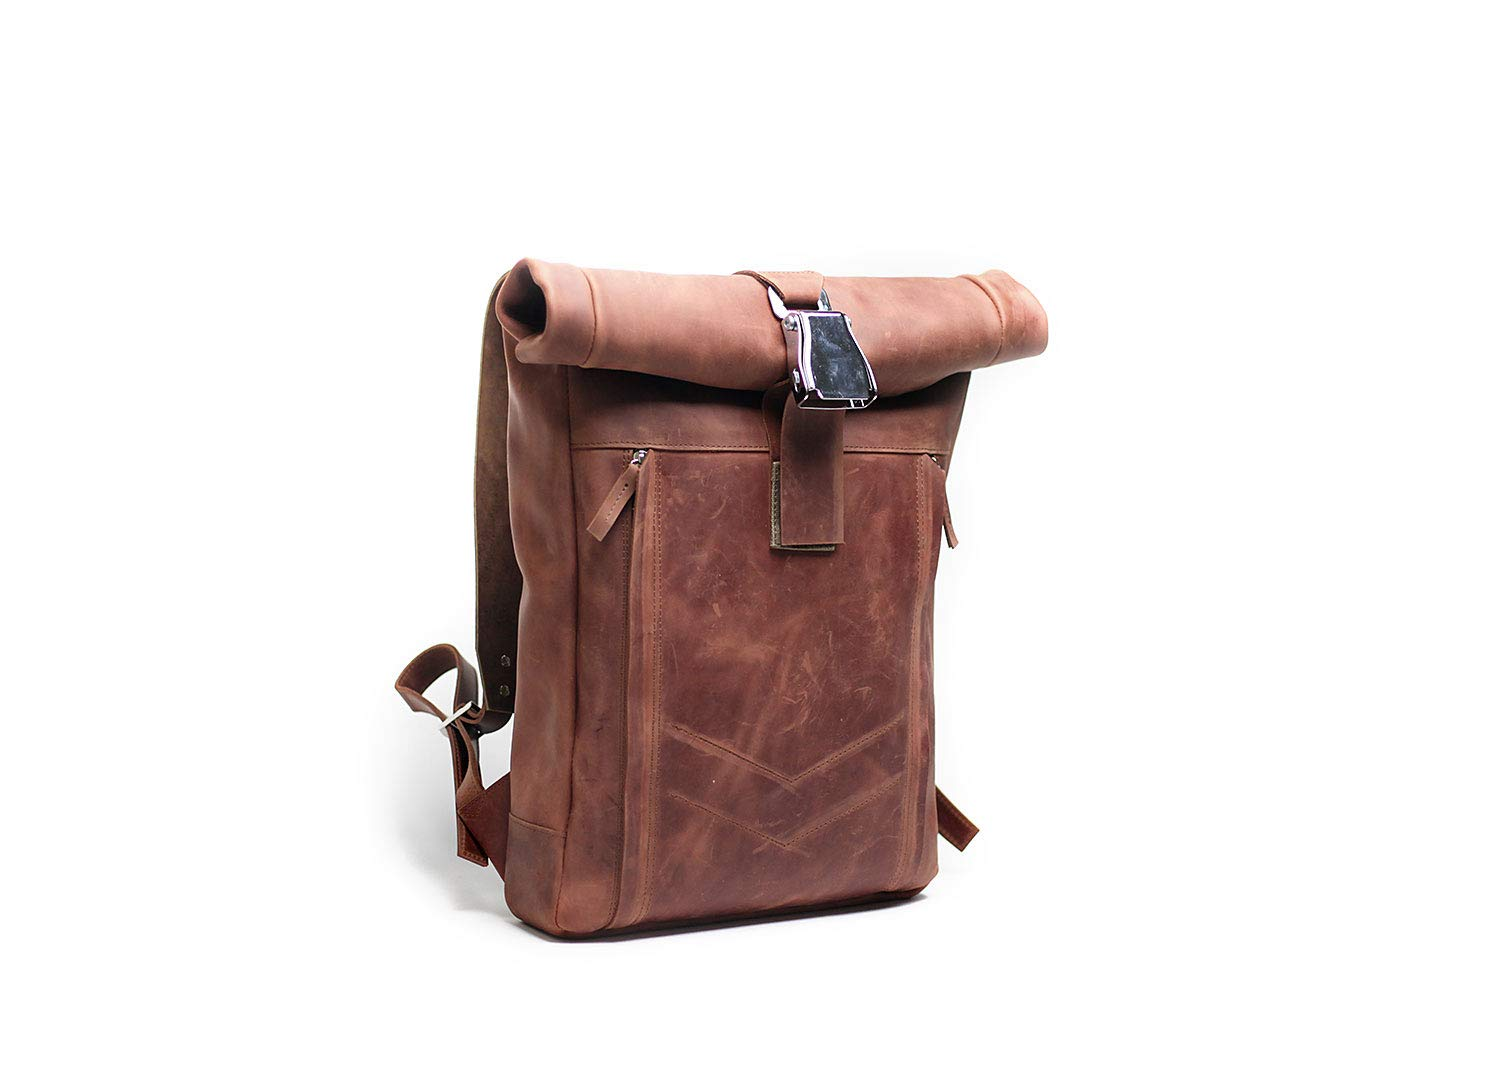 Custom Leather Men Laptop roll top Shoulder Satchel backpack Rucksack Travel